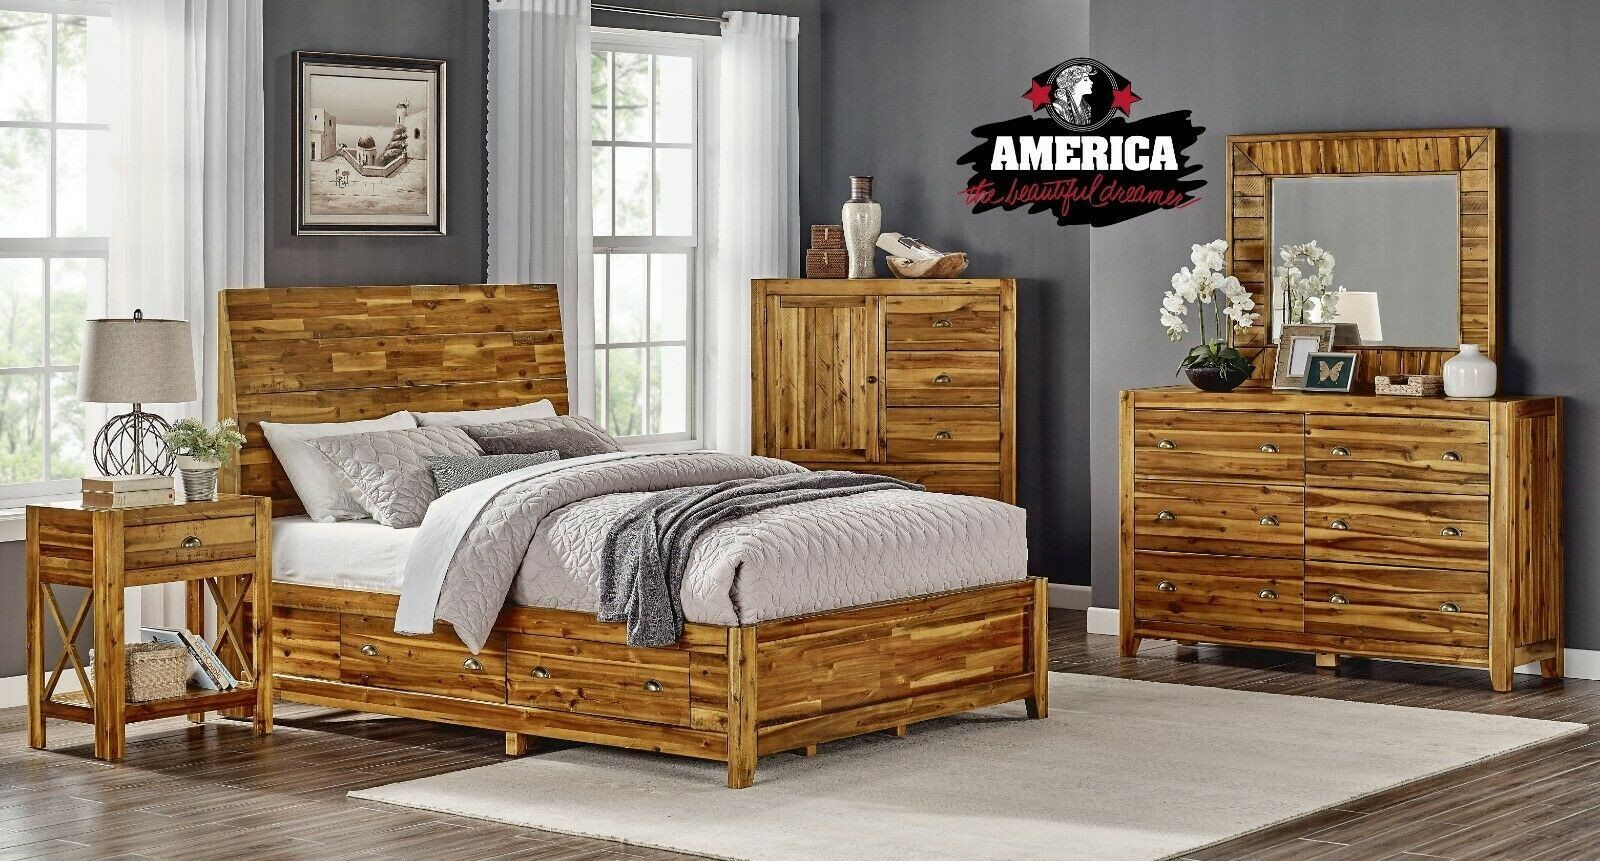 Used Queen Bedroom Set Solid Acacia Wood Bed King Or Queen Bedroom Set Furniture In 2020 Bedroom Sets Queen Toddler Bedroom Furniture Sets Bedroom Set